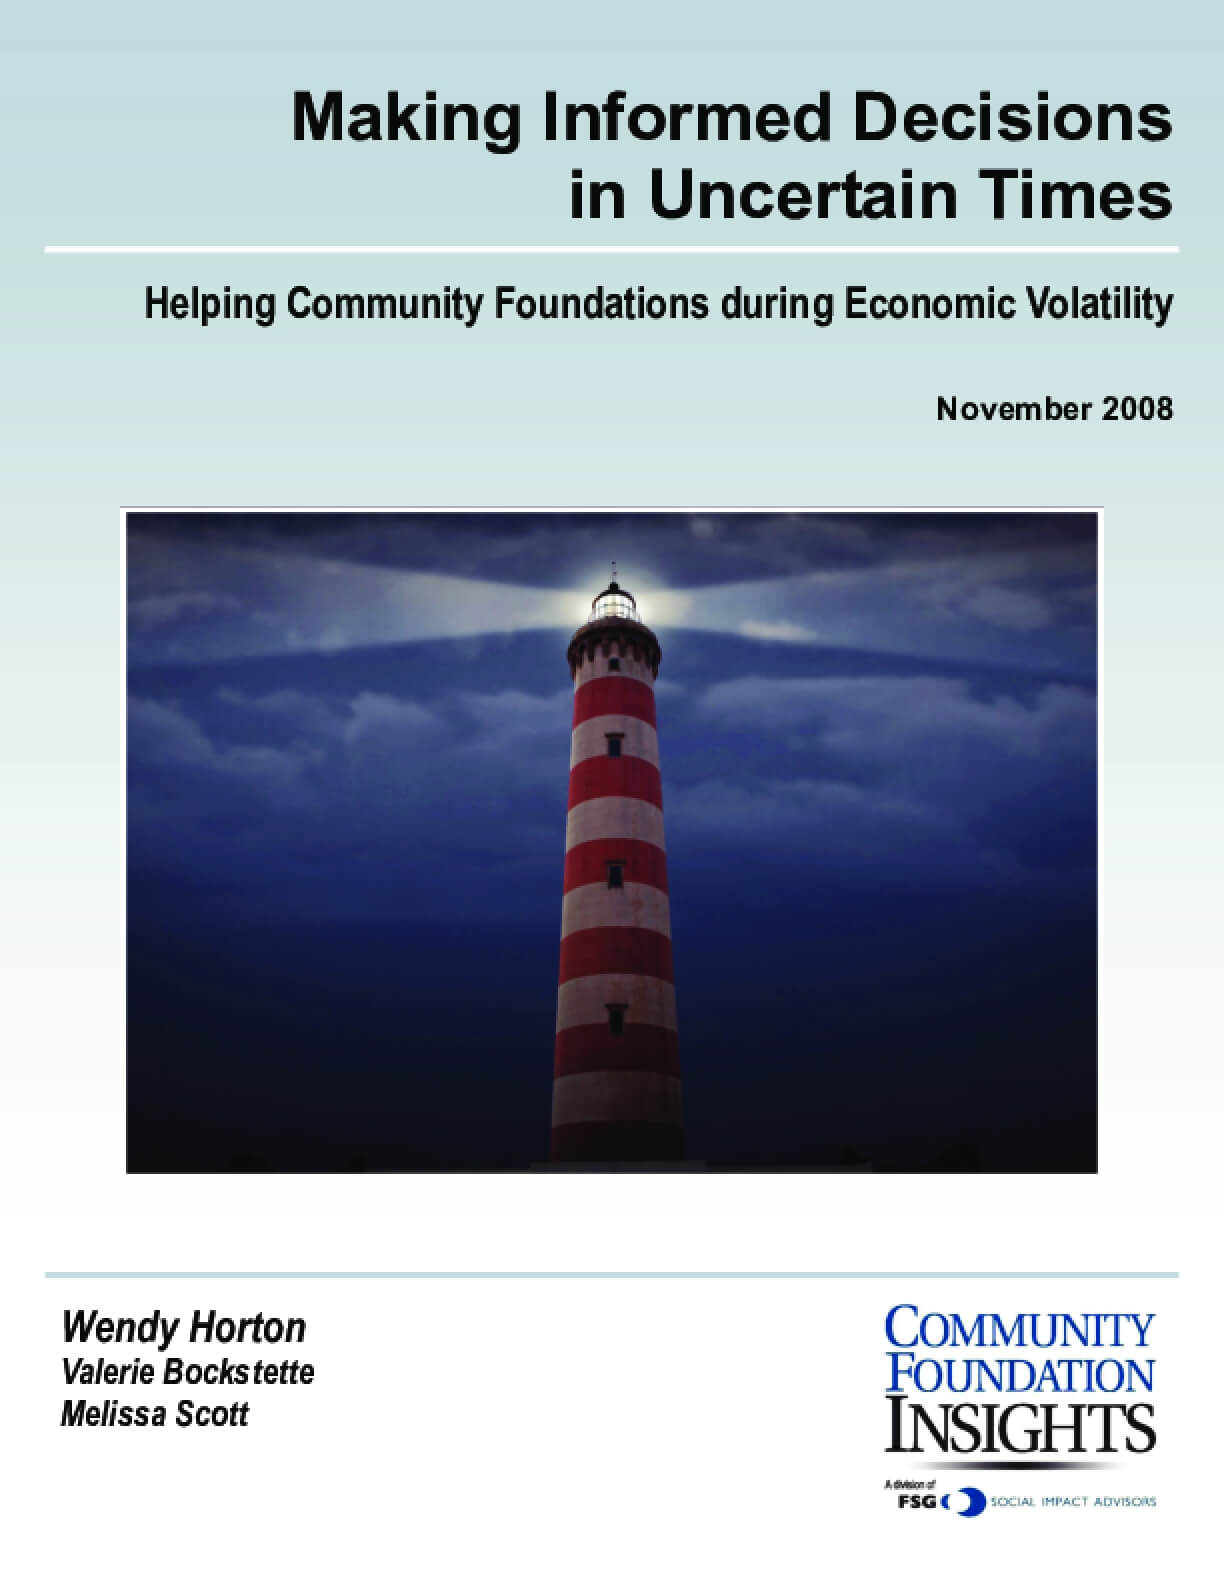 Making Informed Decisions in Uncertain Times: Helping Community Foundations during Economic Volatility